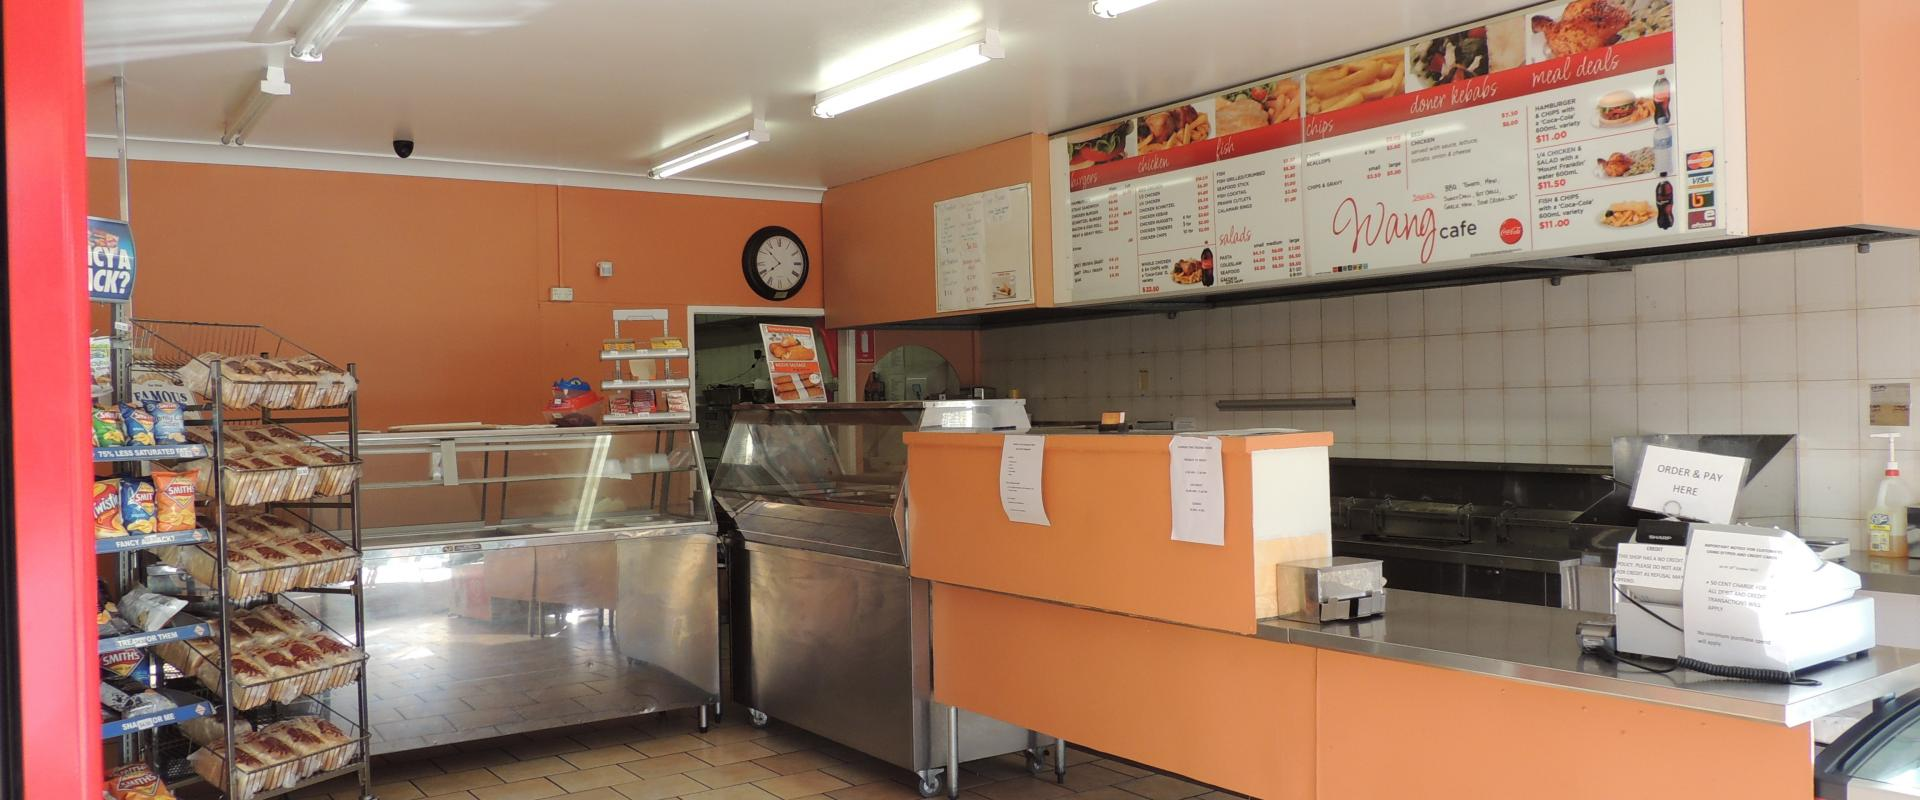 Freehold Property and Business for Sale in NSW contact Michael Vitullo